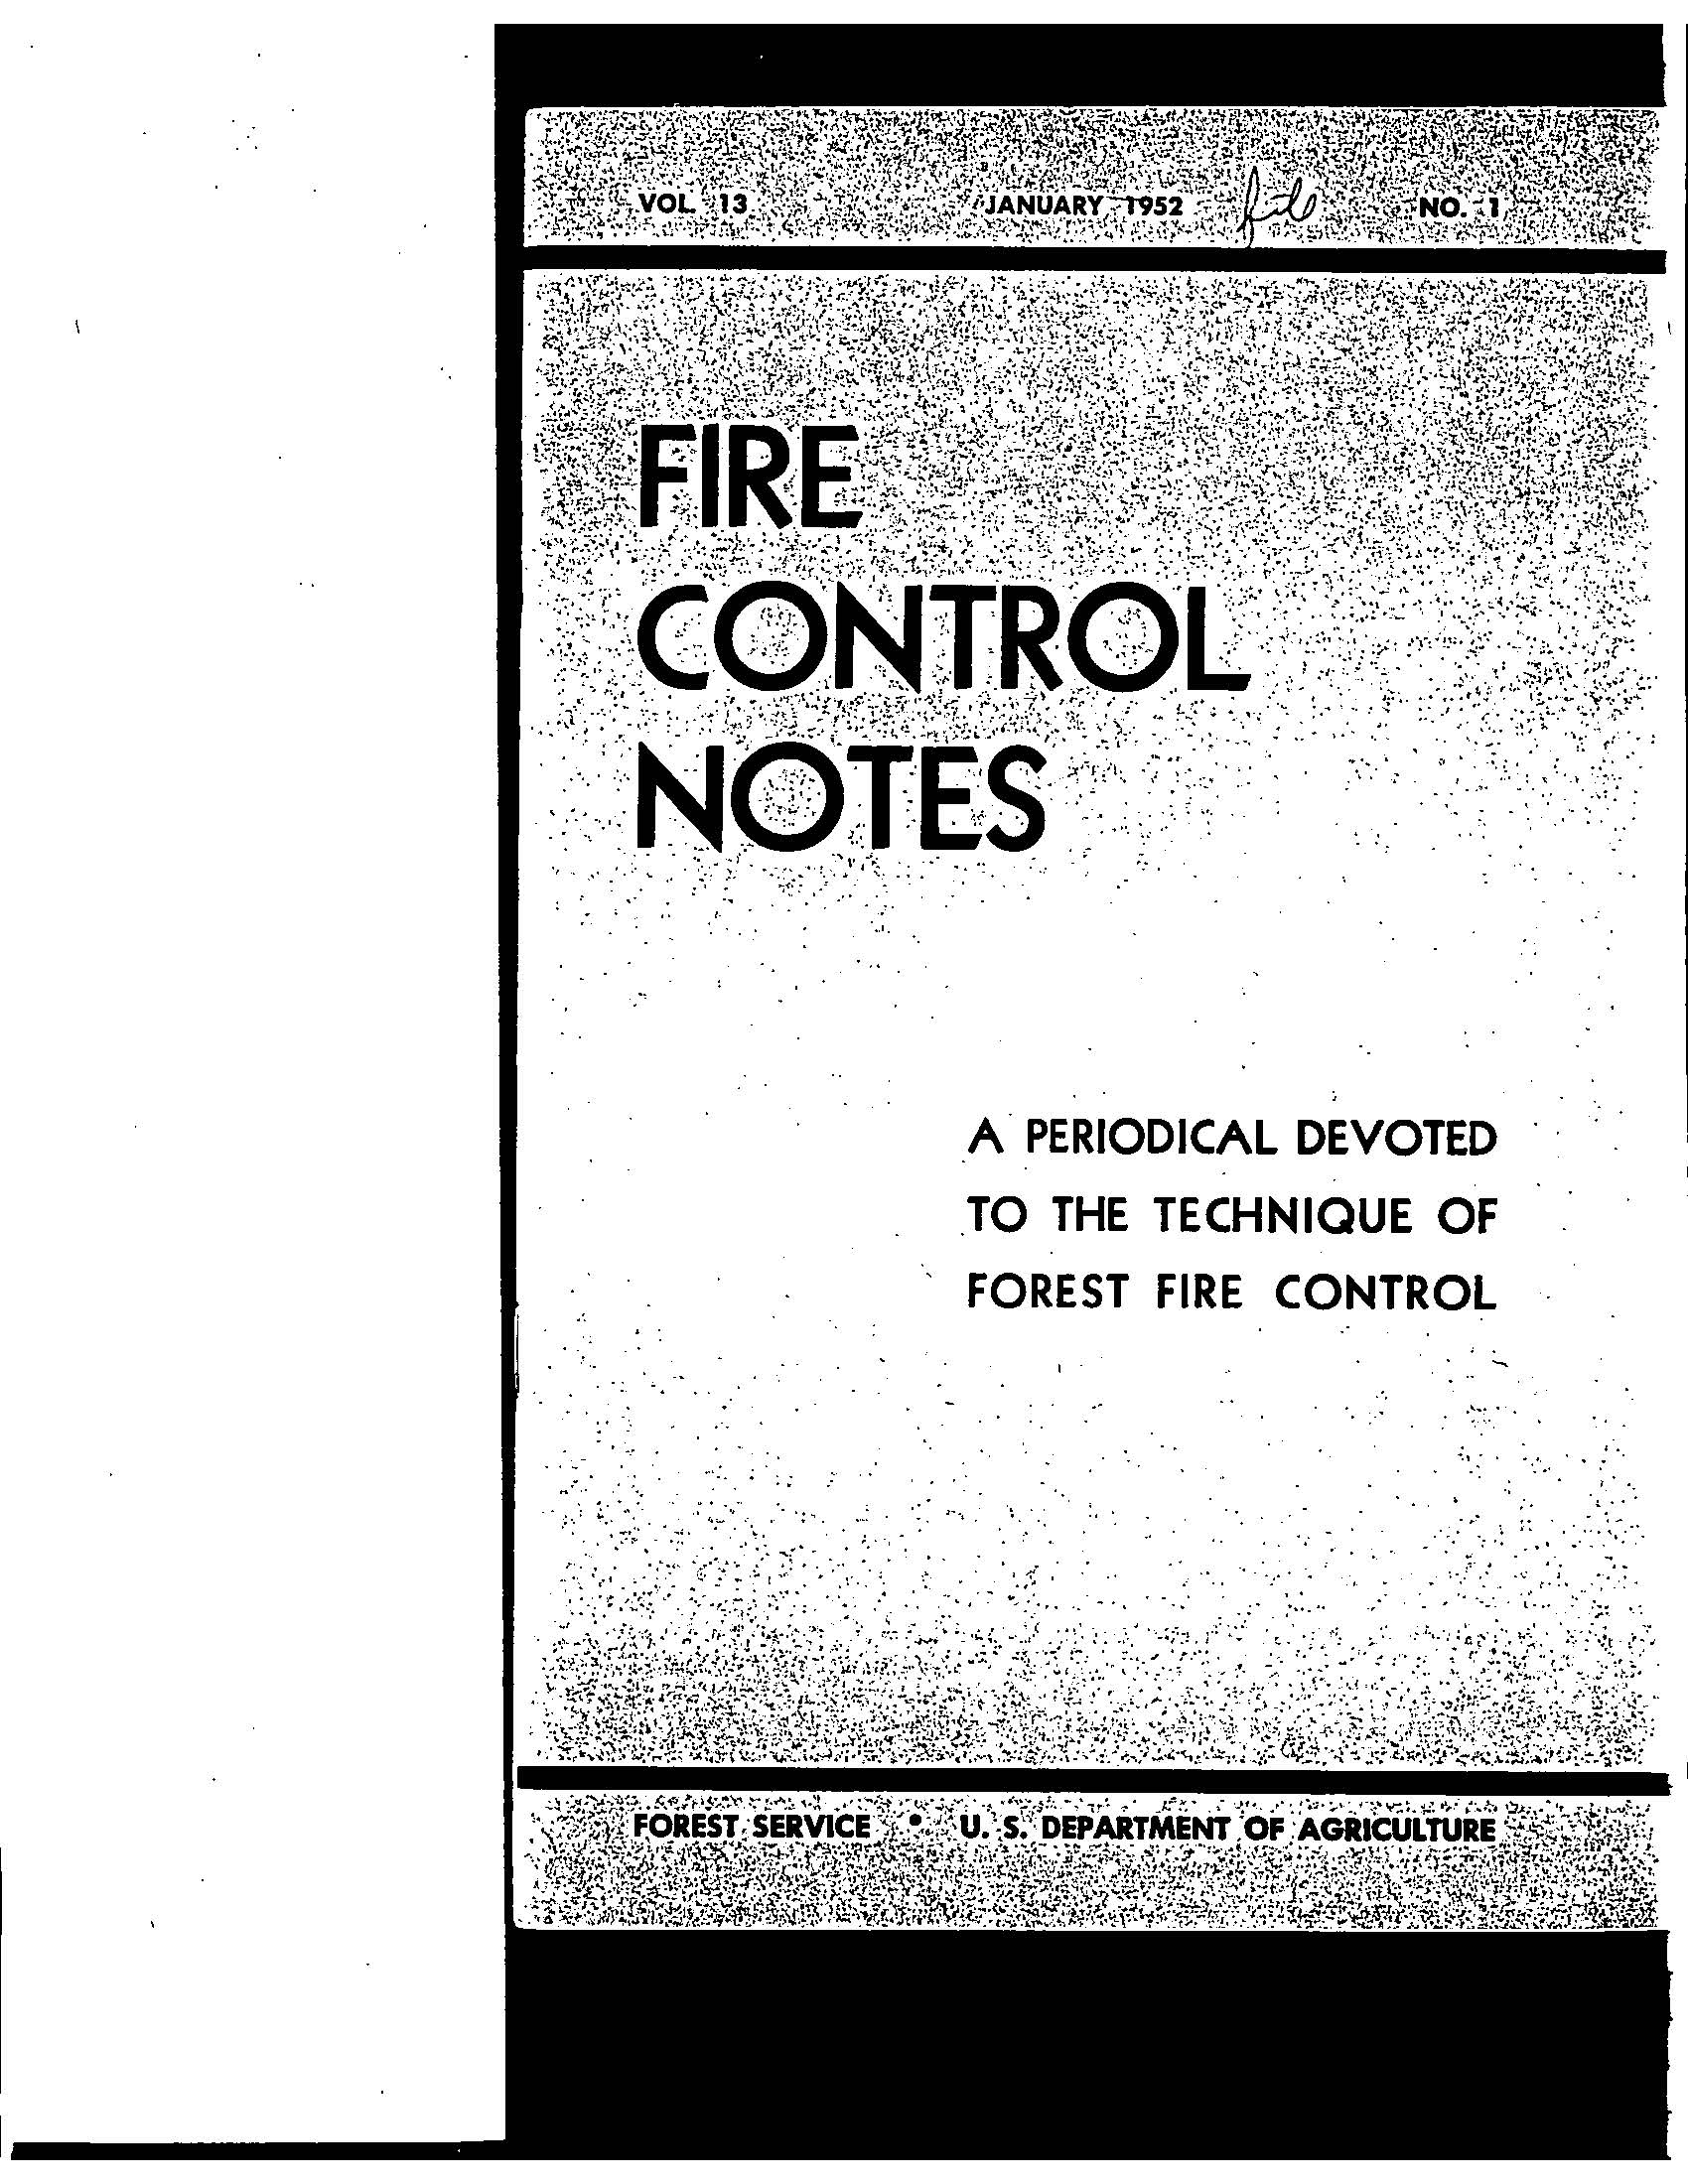 Cover of Fire Management Today Volume 13, Issue 01